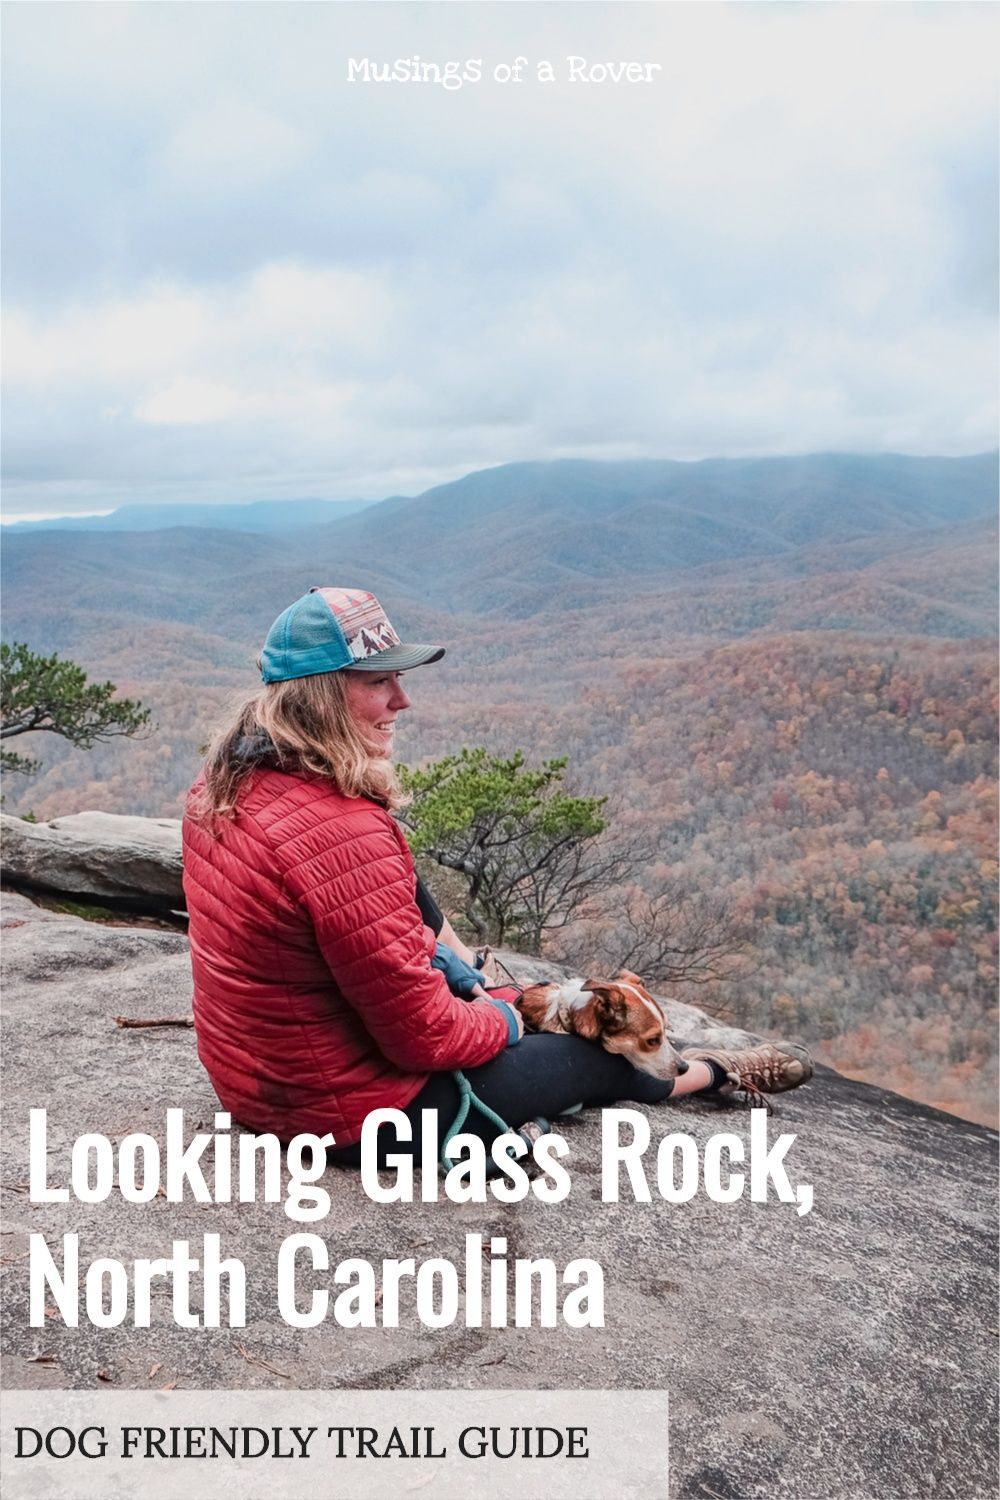 Looking Glass Rock is one of the iconic sites of Pisgah National Forest. Find out how to hike to the top of this beautiful mountain for some of the most amazing views in the national forest. If you're visiting Brevard or Asheville, don't miss this amazing trail.